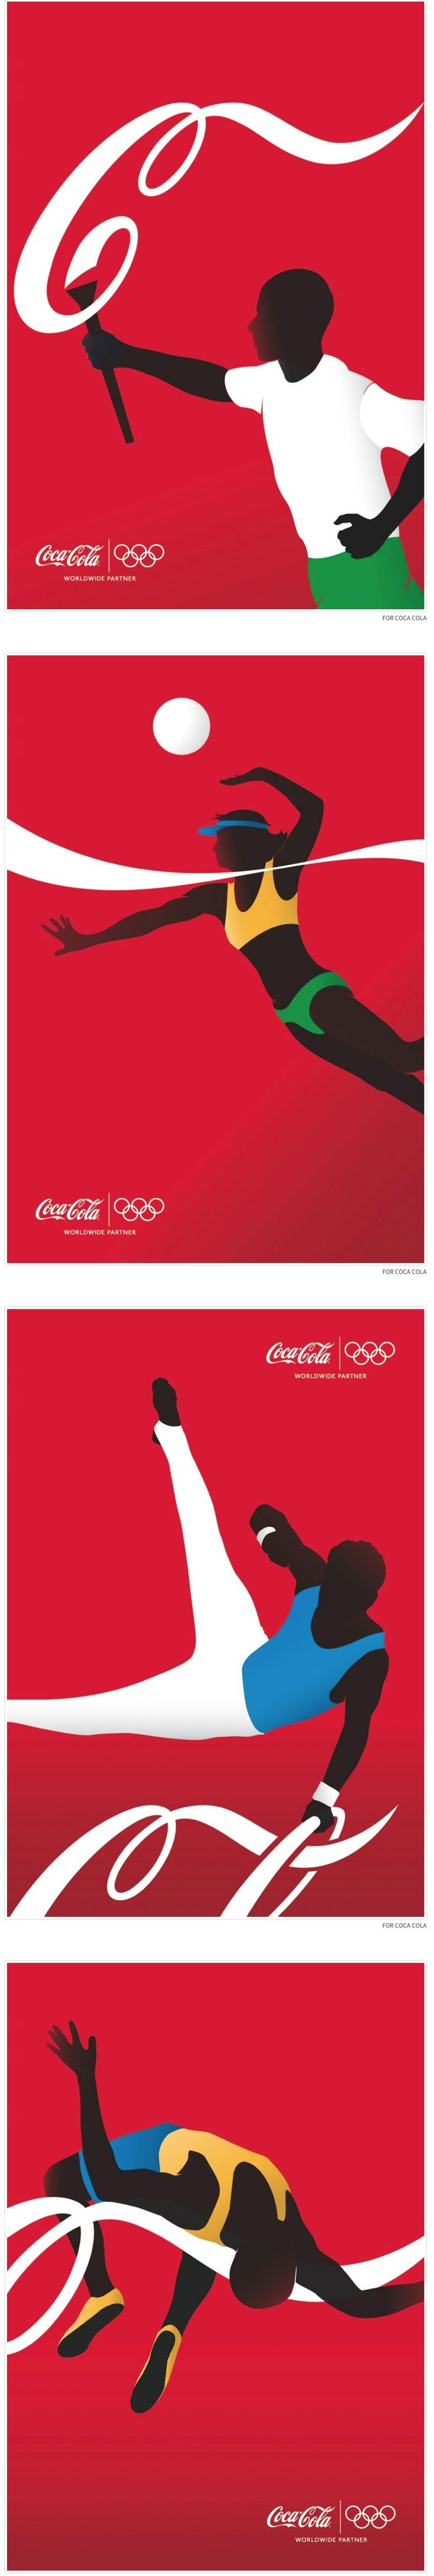 Creative COCA COLA Olympic #Ads #graphic #graphicdesign #design